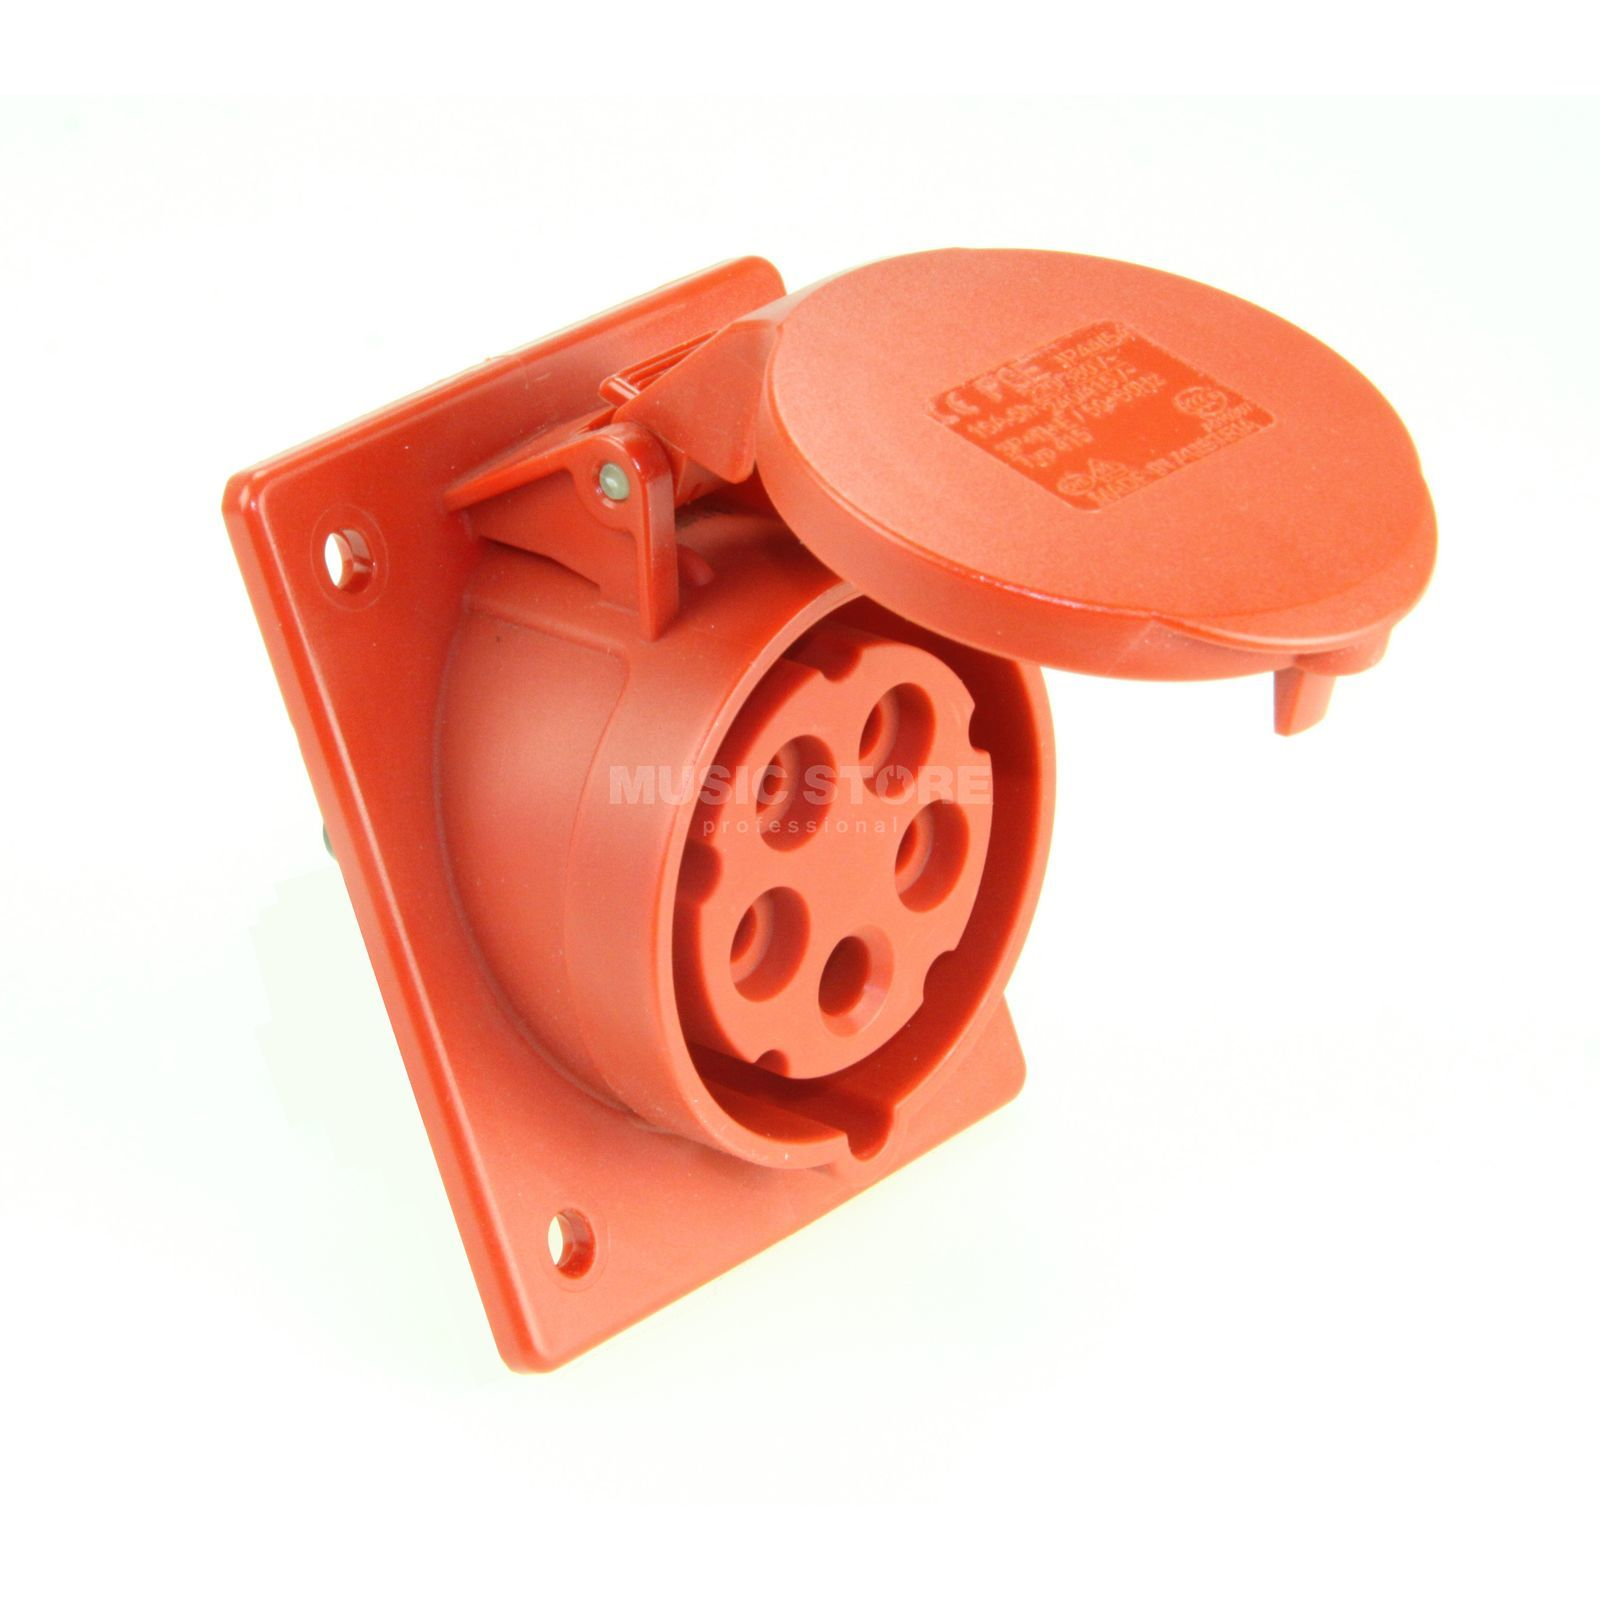 PCE Flanged Socket Sloping CEE 16A 5pin Turbo Twist, red Produktbillede